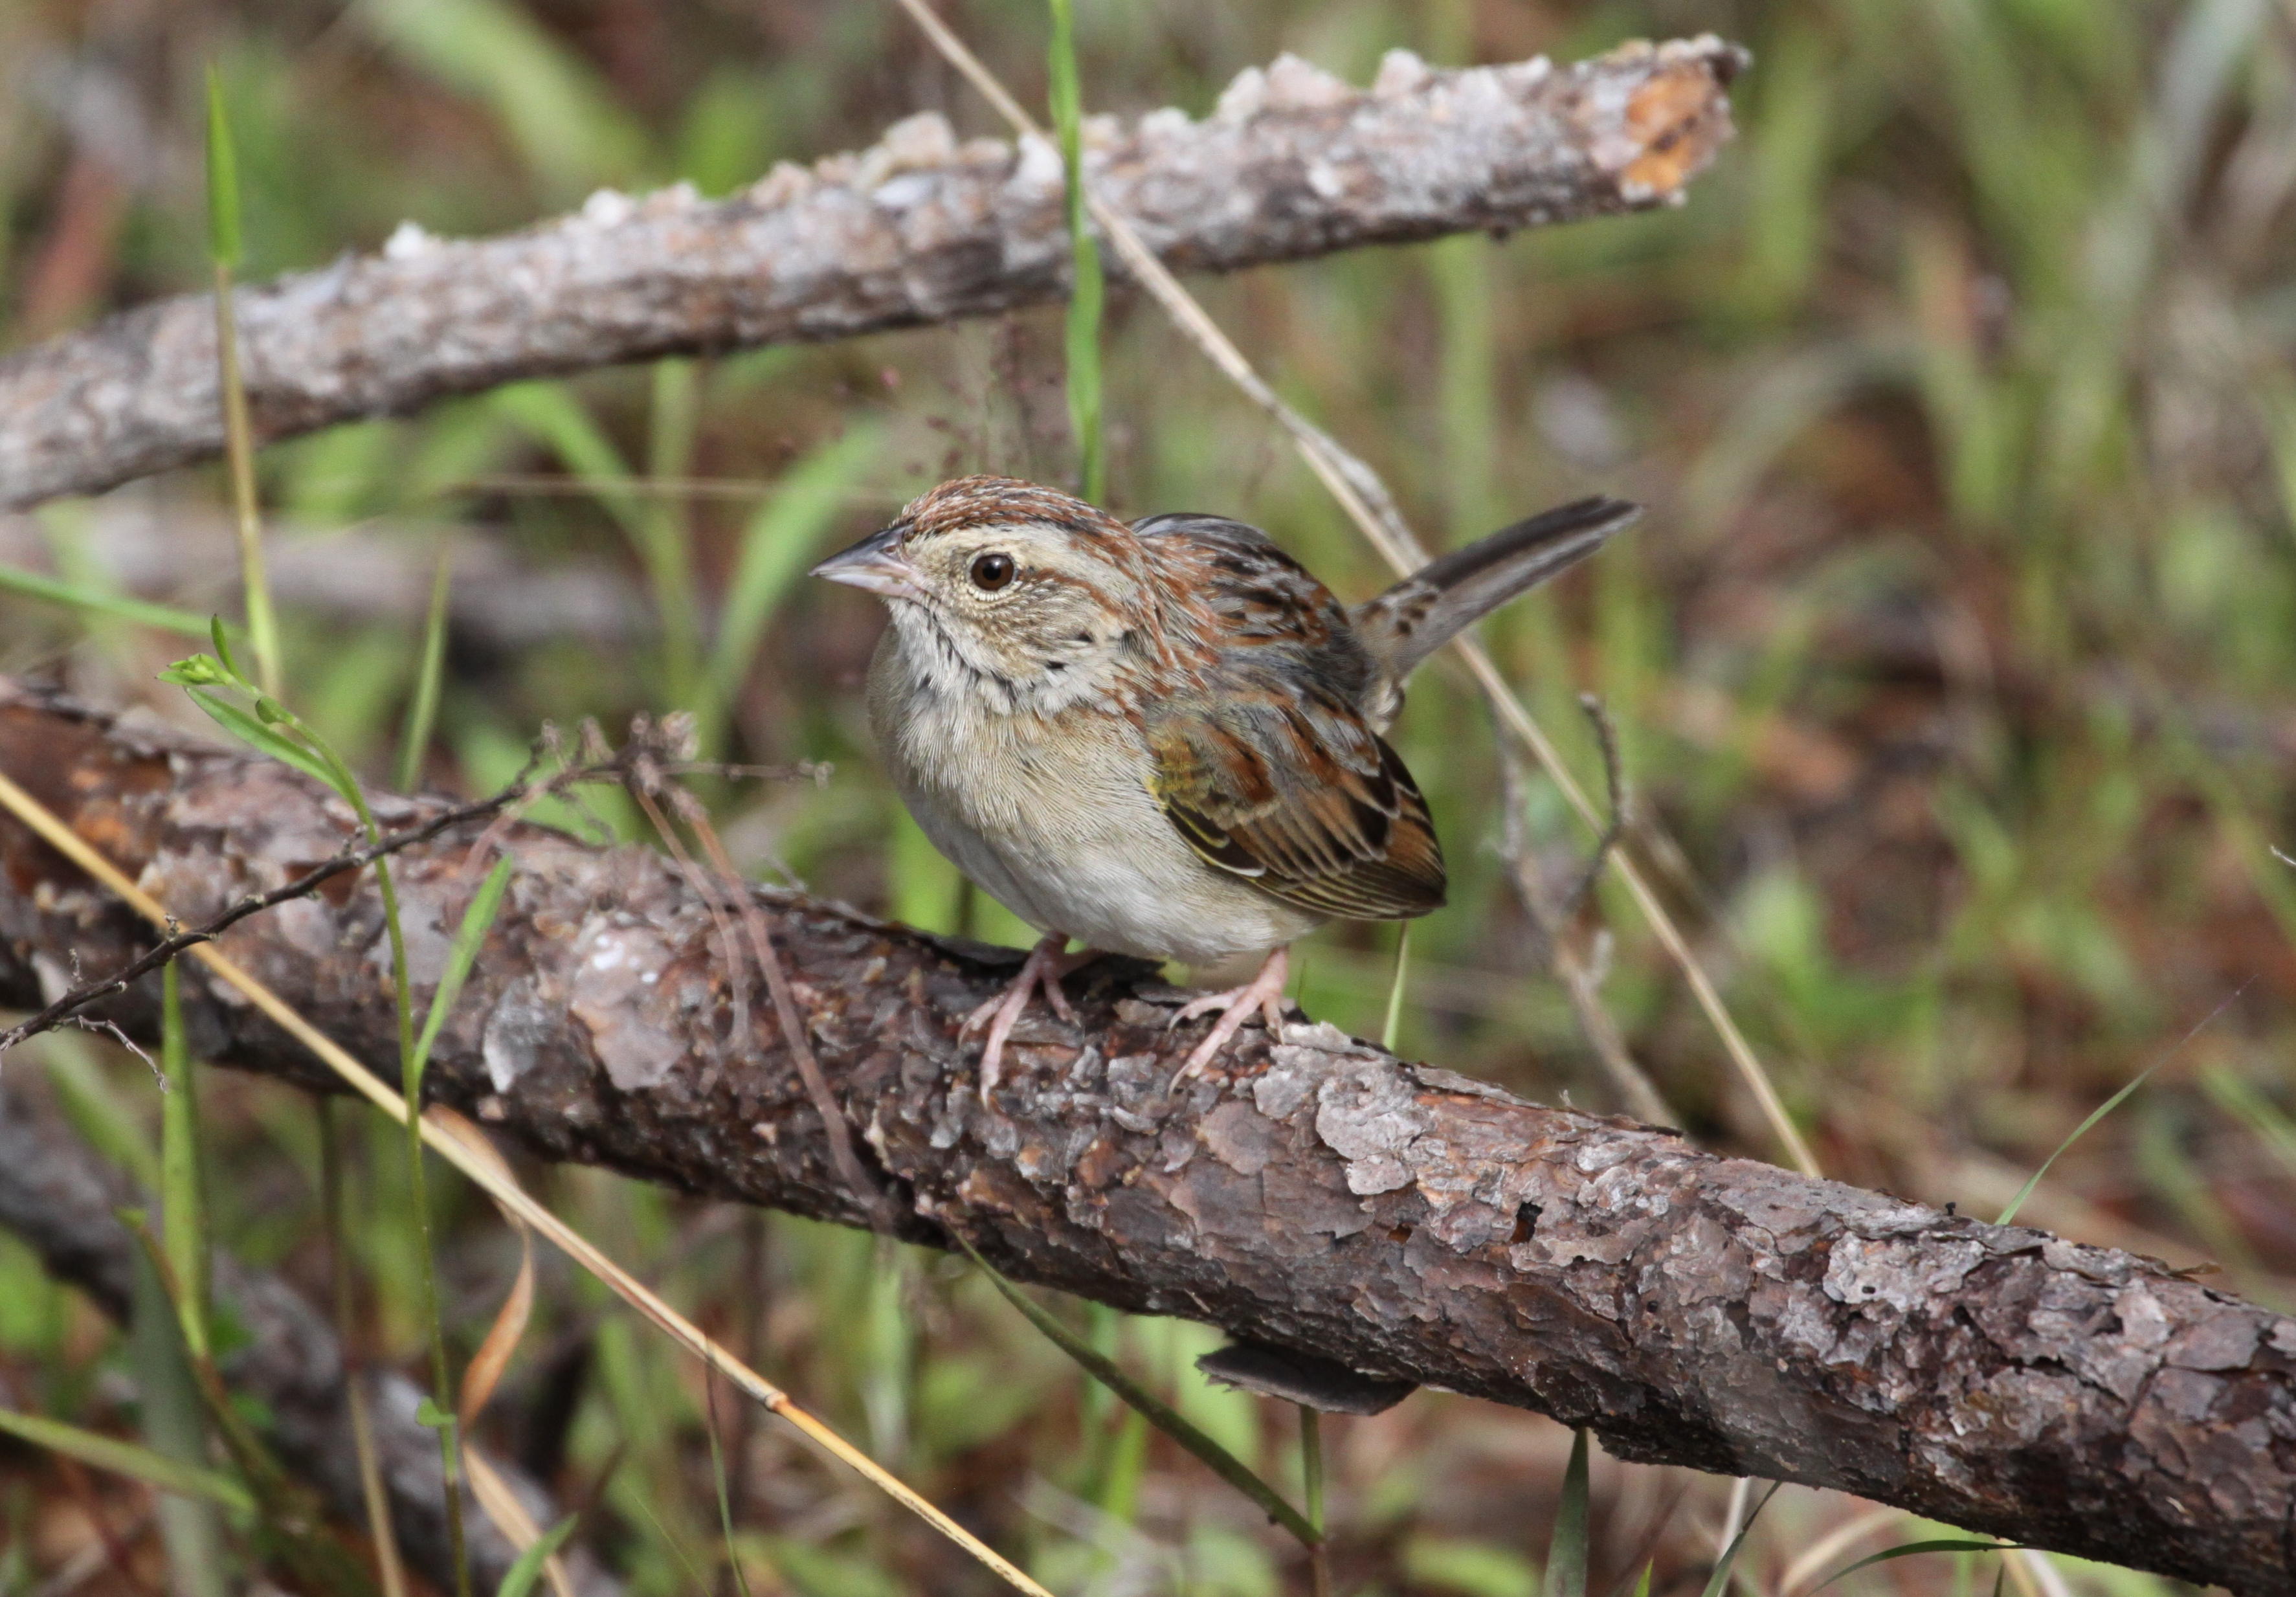 A species often sought by birders is the Bachman's sparrow. This rare bird can found in the pine uplands of the Wehle Tract primarily during spring and summer. Photo by Eric Soehren, ADCNR